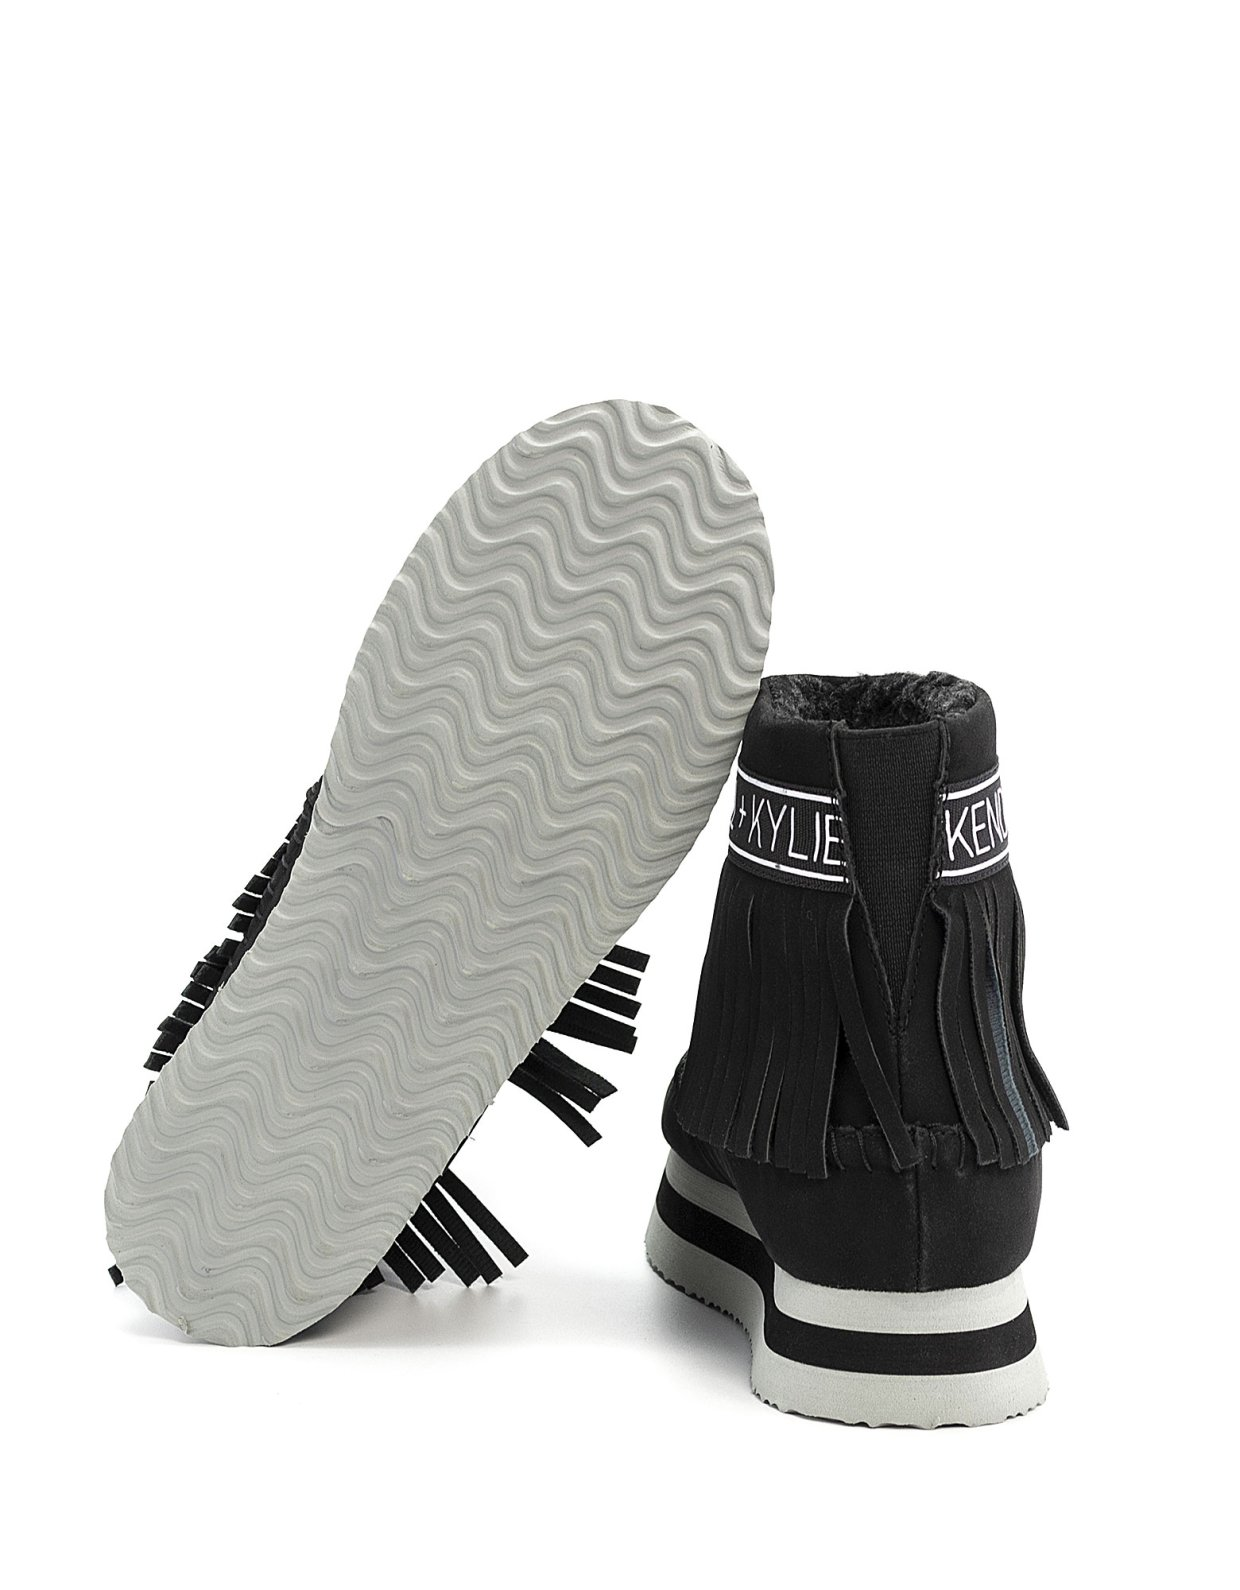 Kendall + Kylie Sirena shoes black